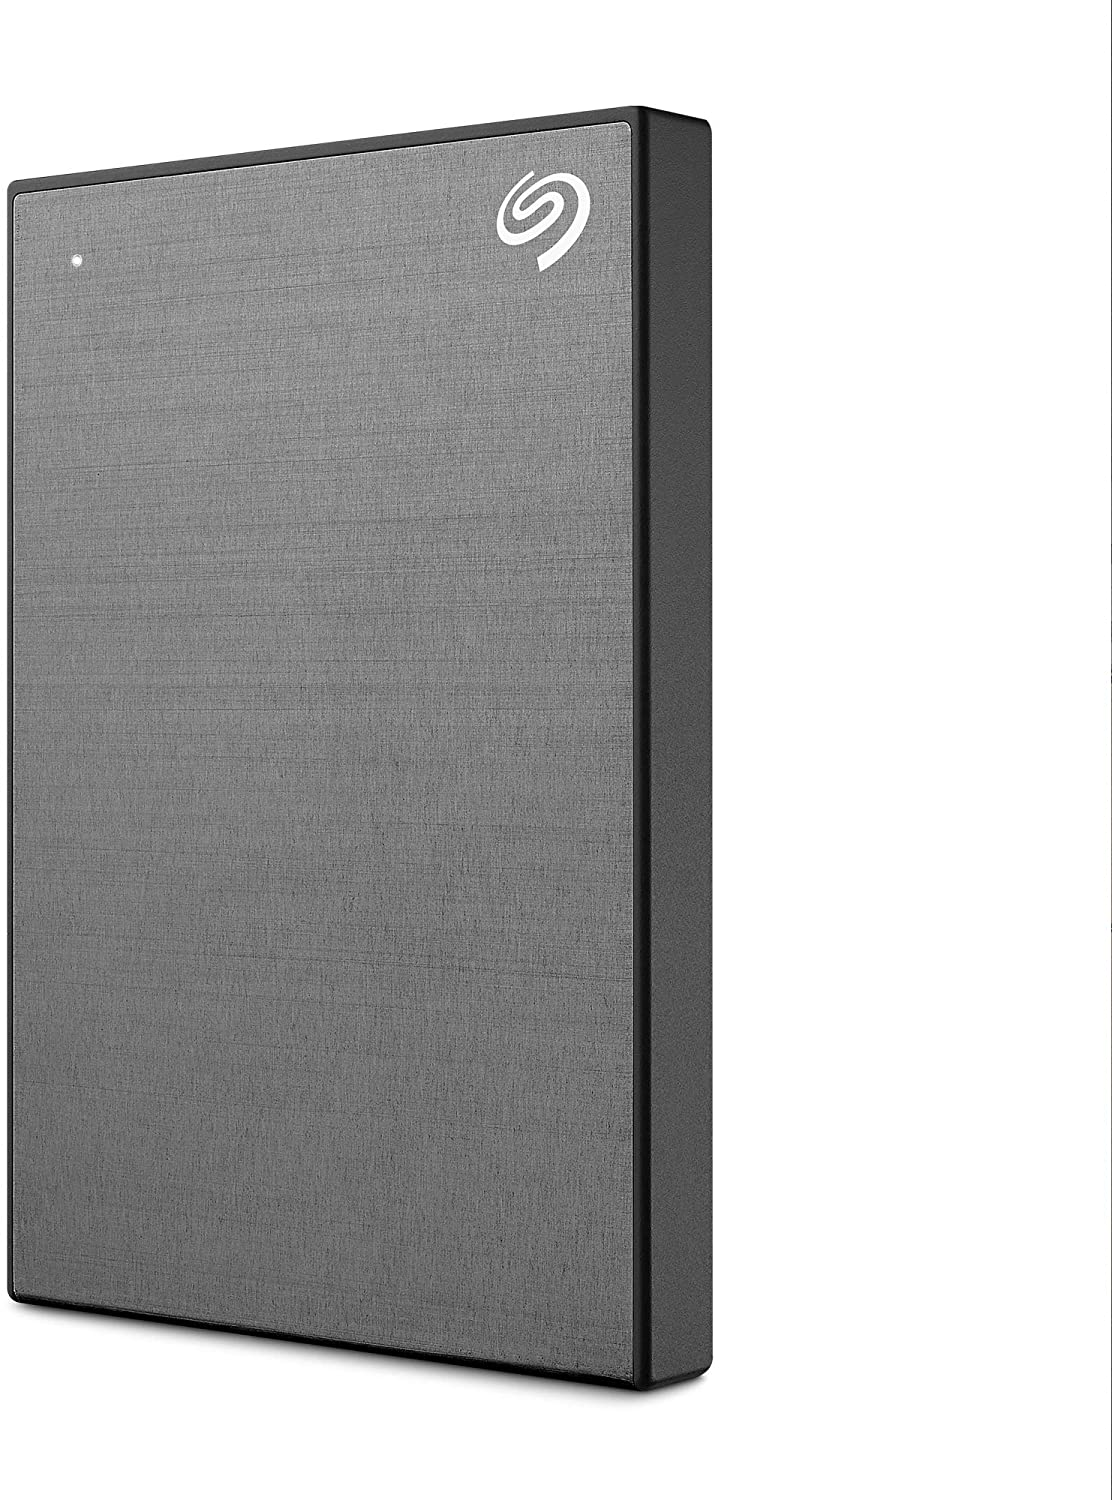 Seagate One Touch 2 TB HDD Space Gray (USB 3.0)